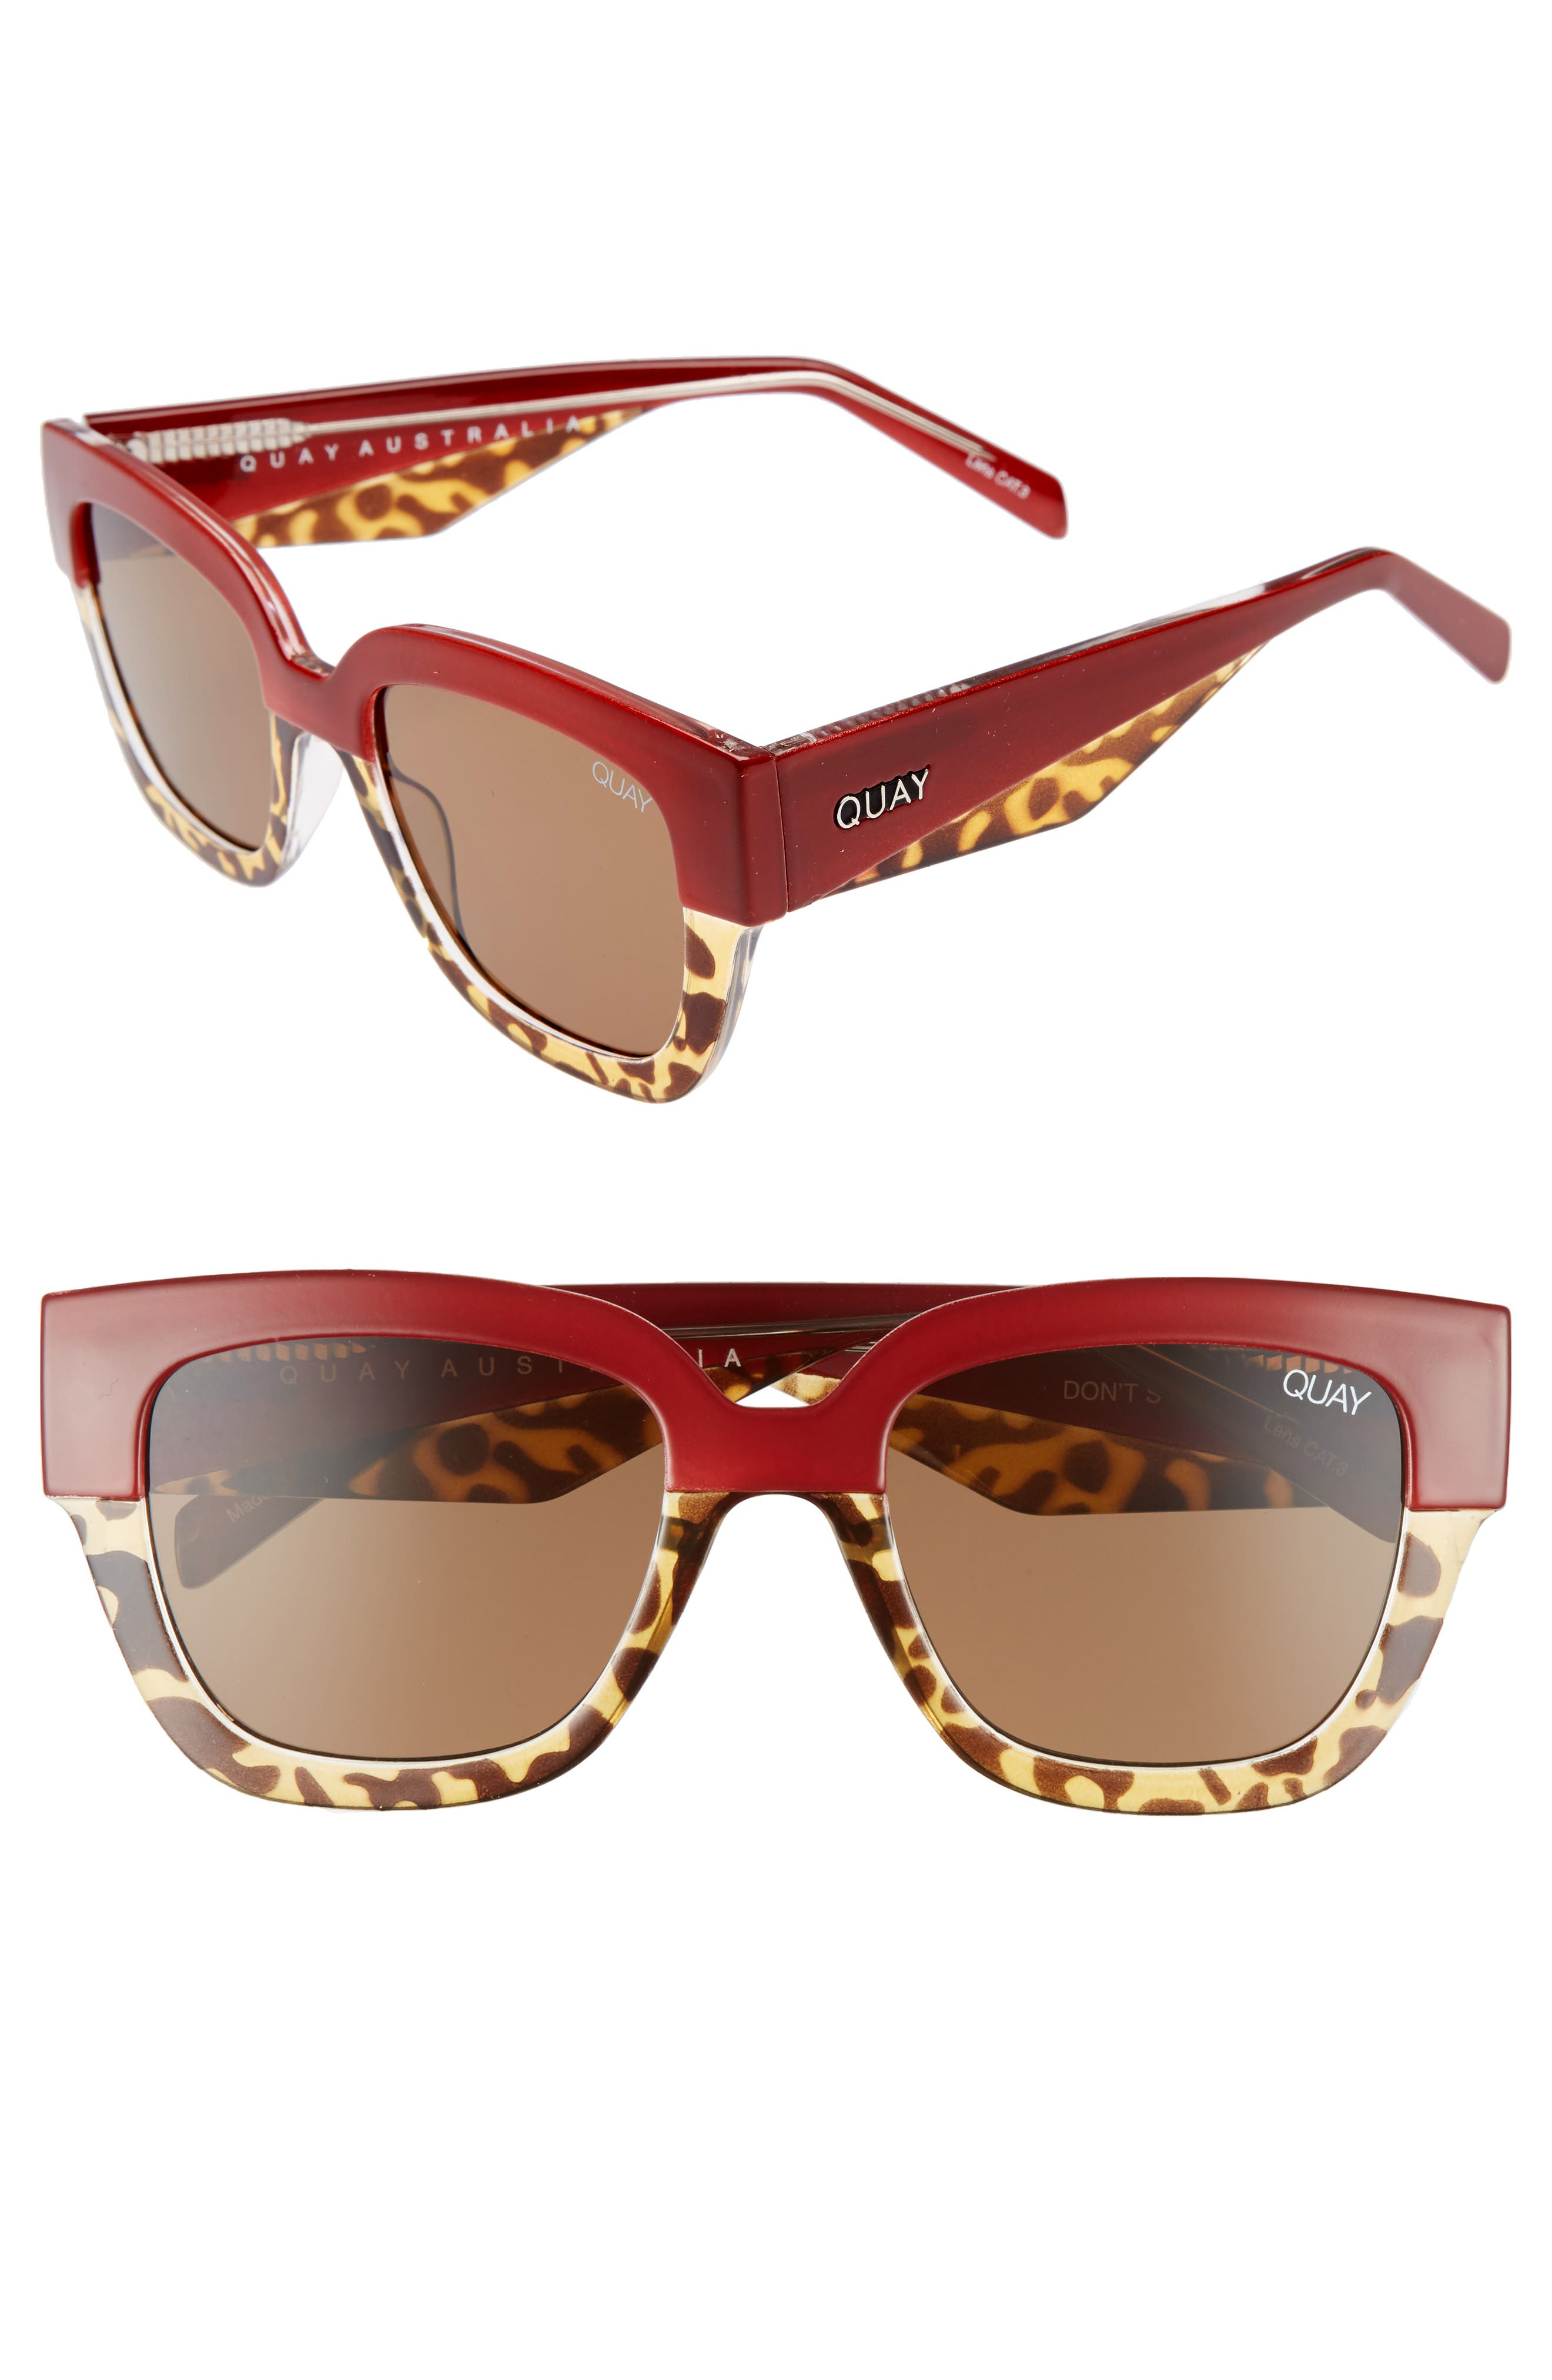 55mm Don't Stop Sunglasses,                         Main,                         color, Red/ Tort/ Brown